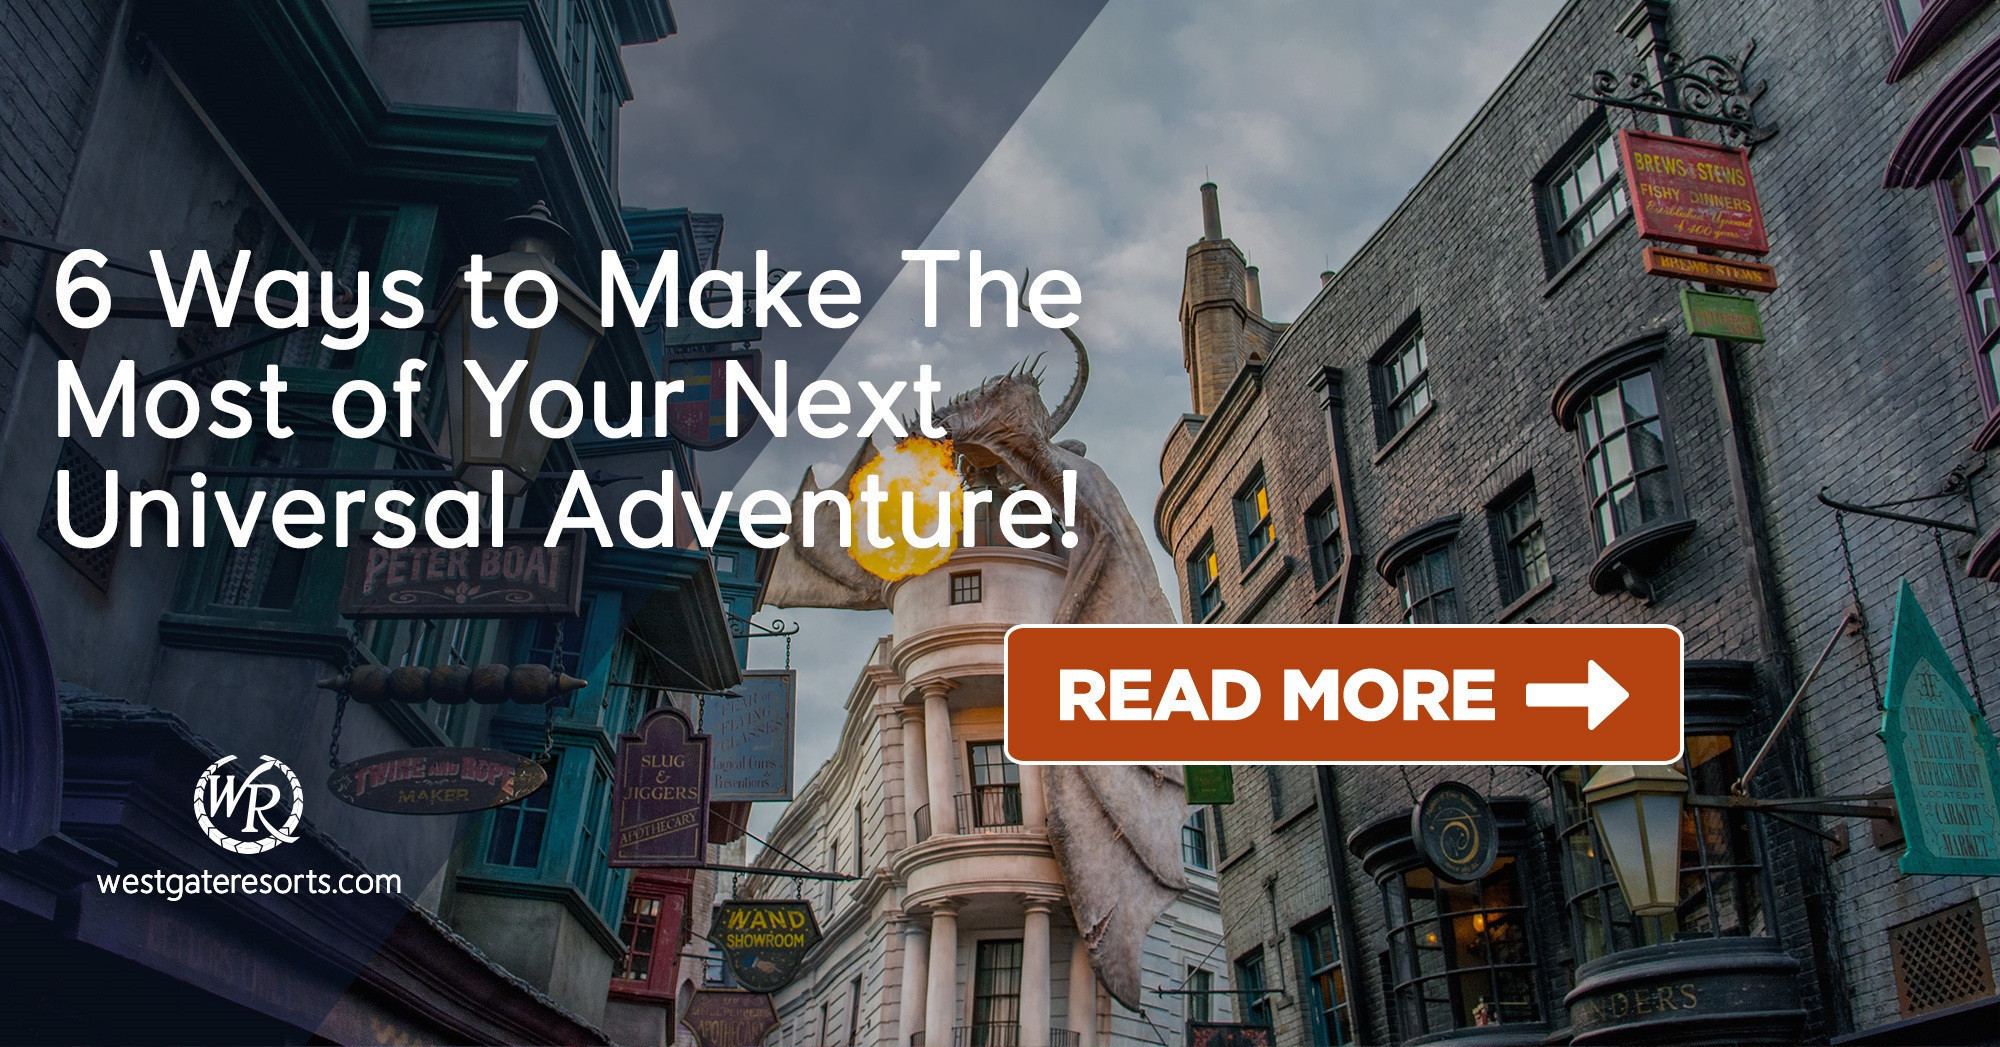 6 Ways to Make The Most of Your Next Universal Adventure!